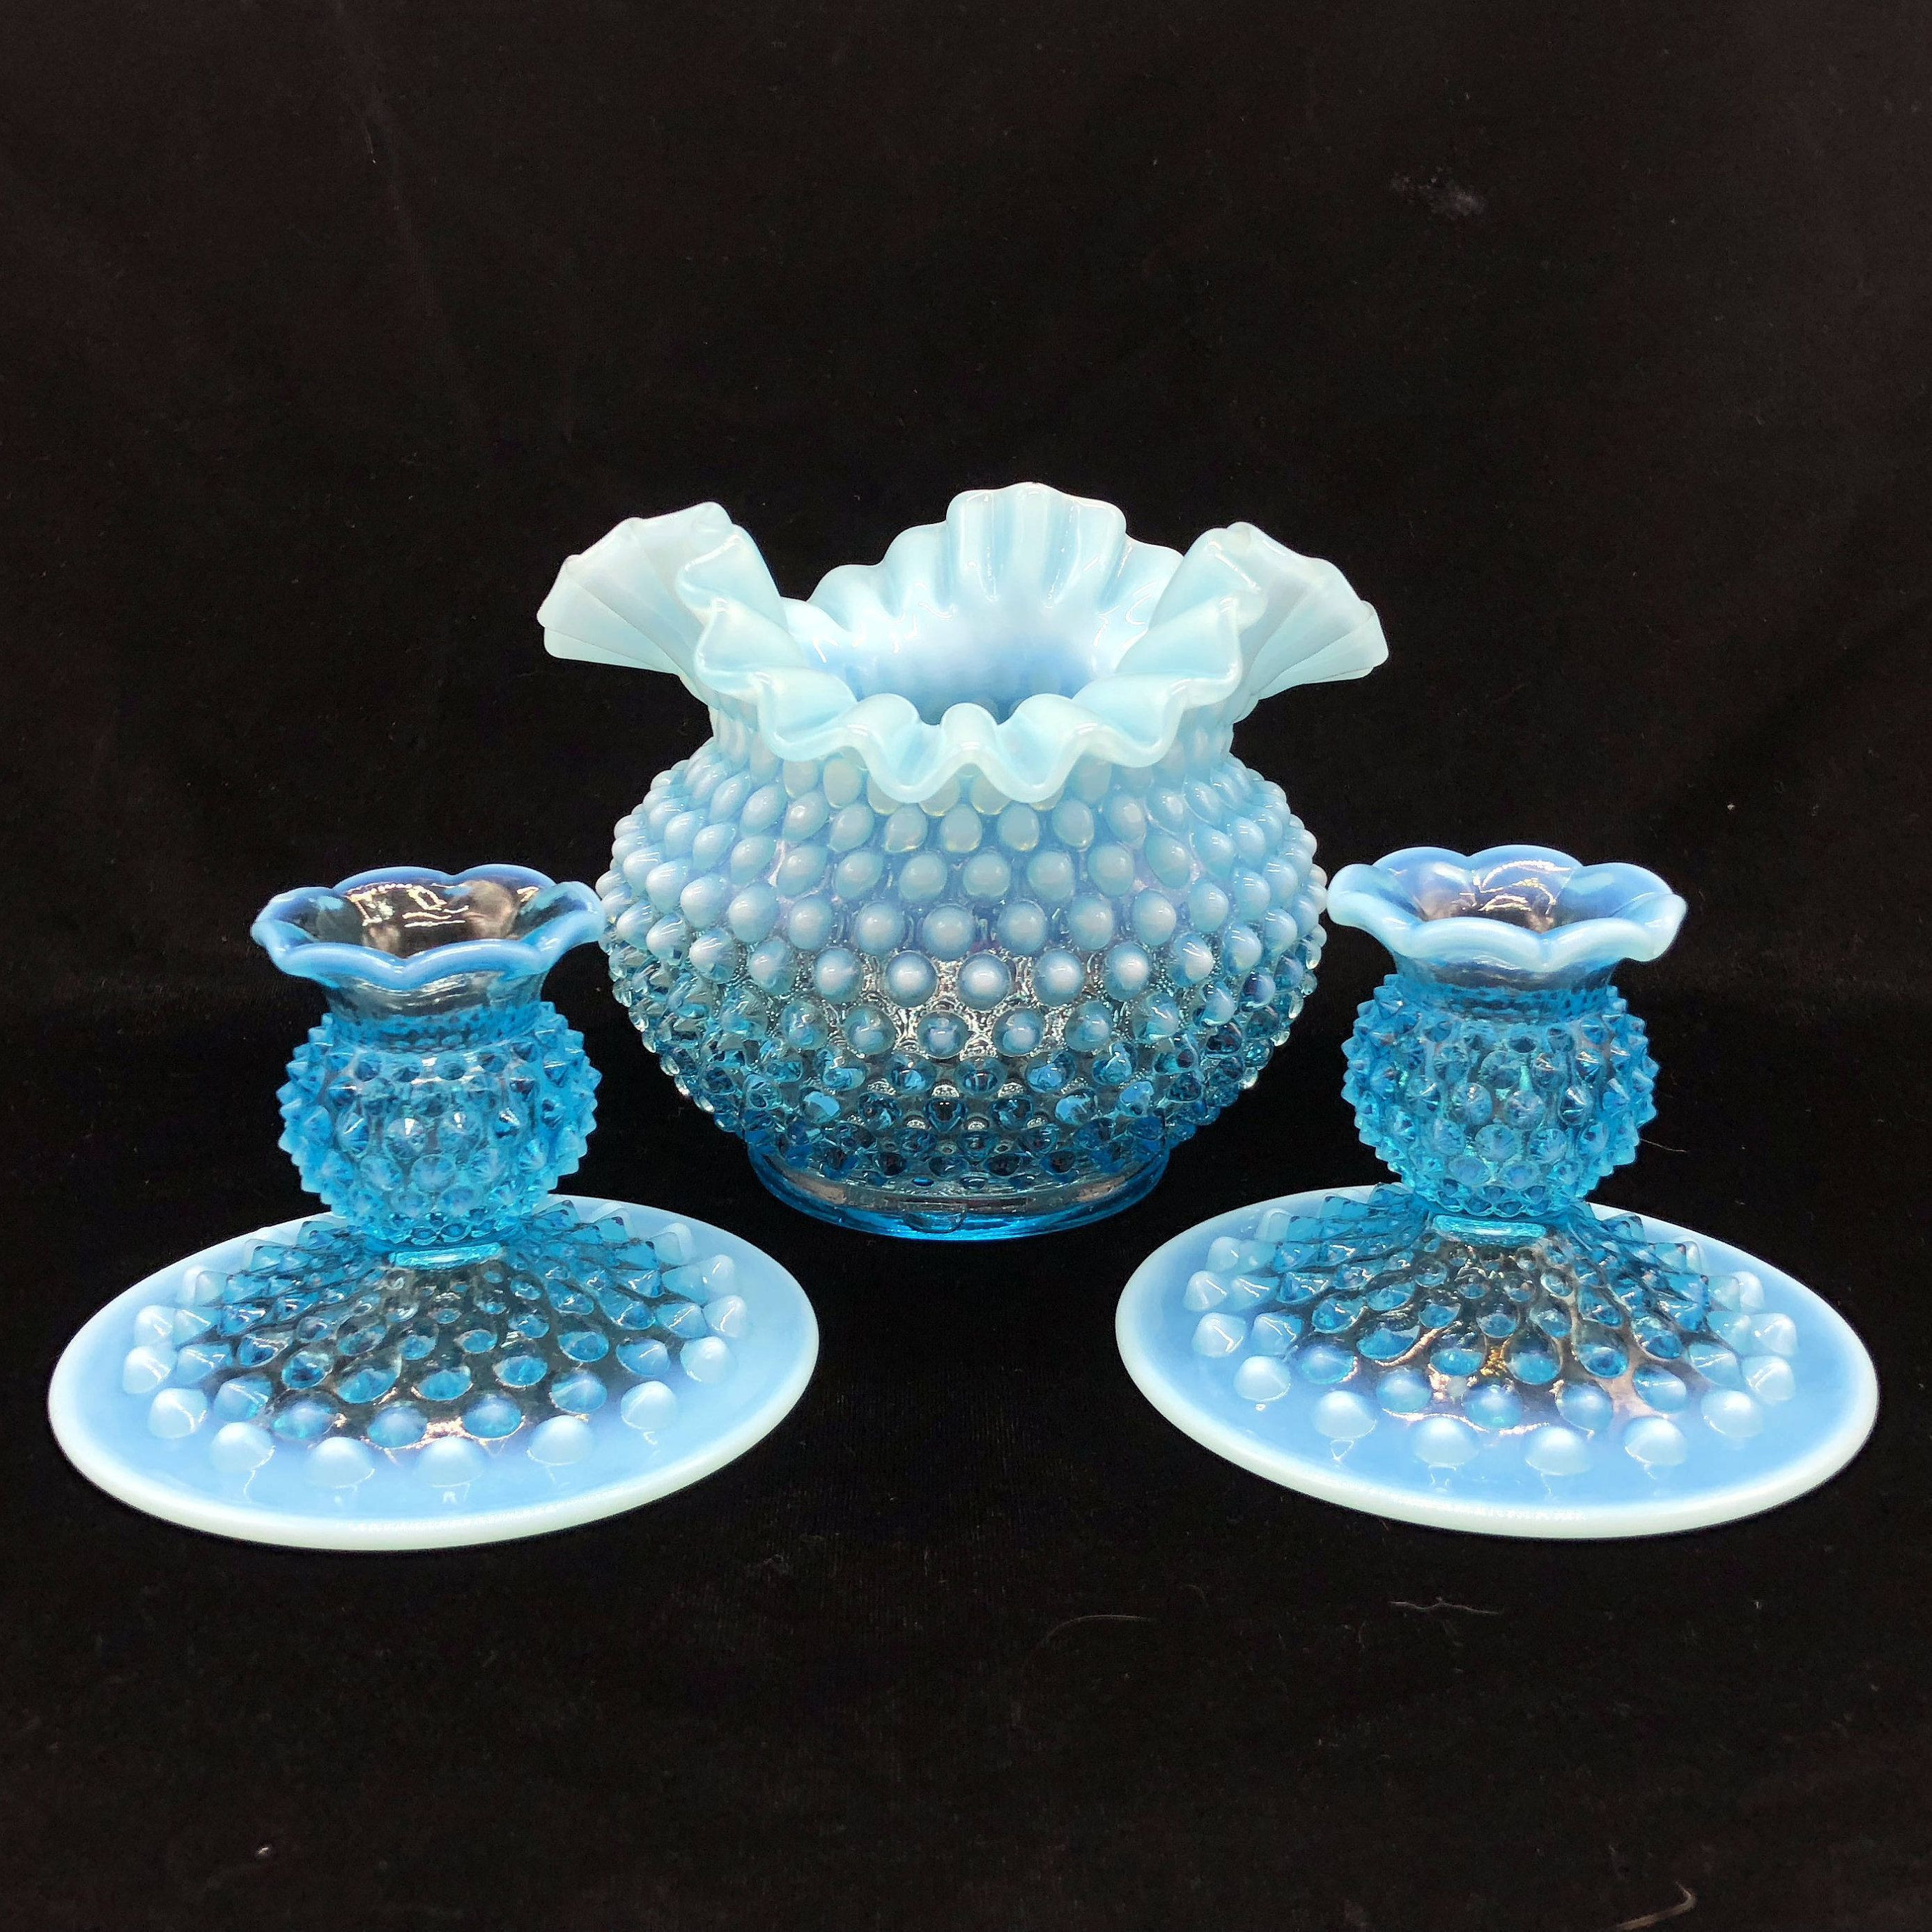 small blue glass vase of 37 fenton blue glass vase the weekly world with fenton hobnail glass centerpiece set blue opalescent vase candle